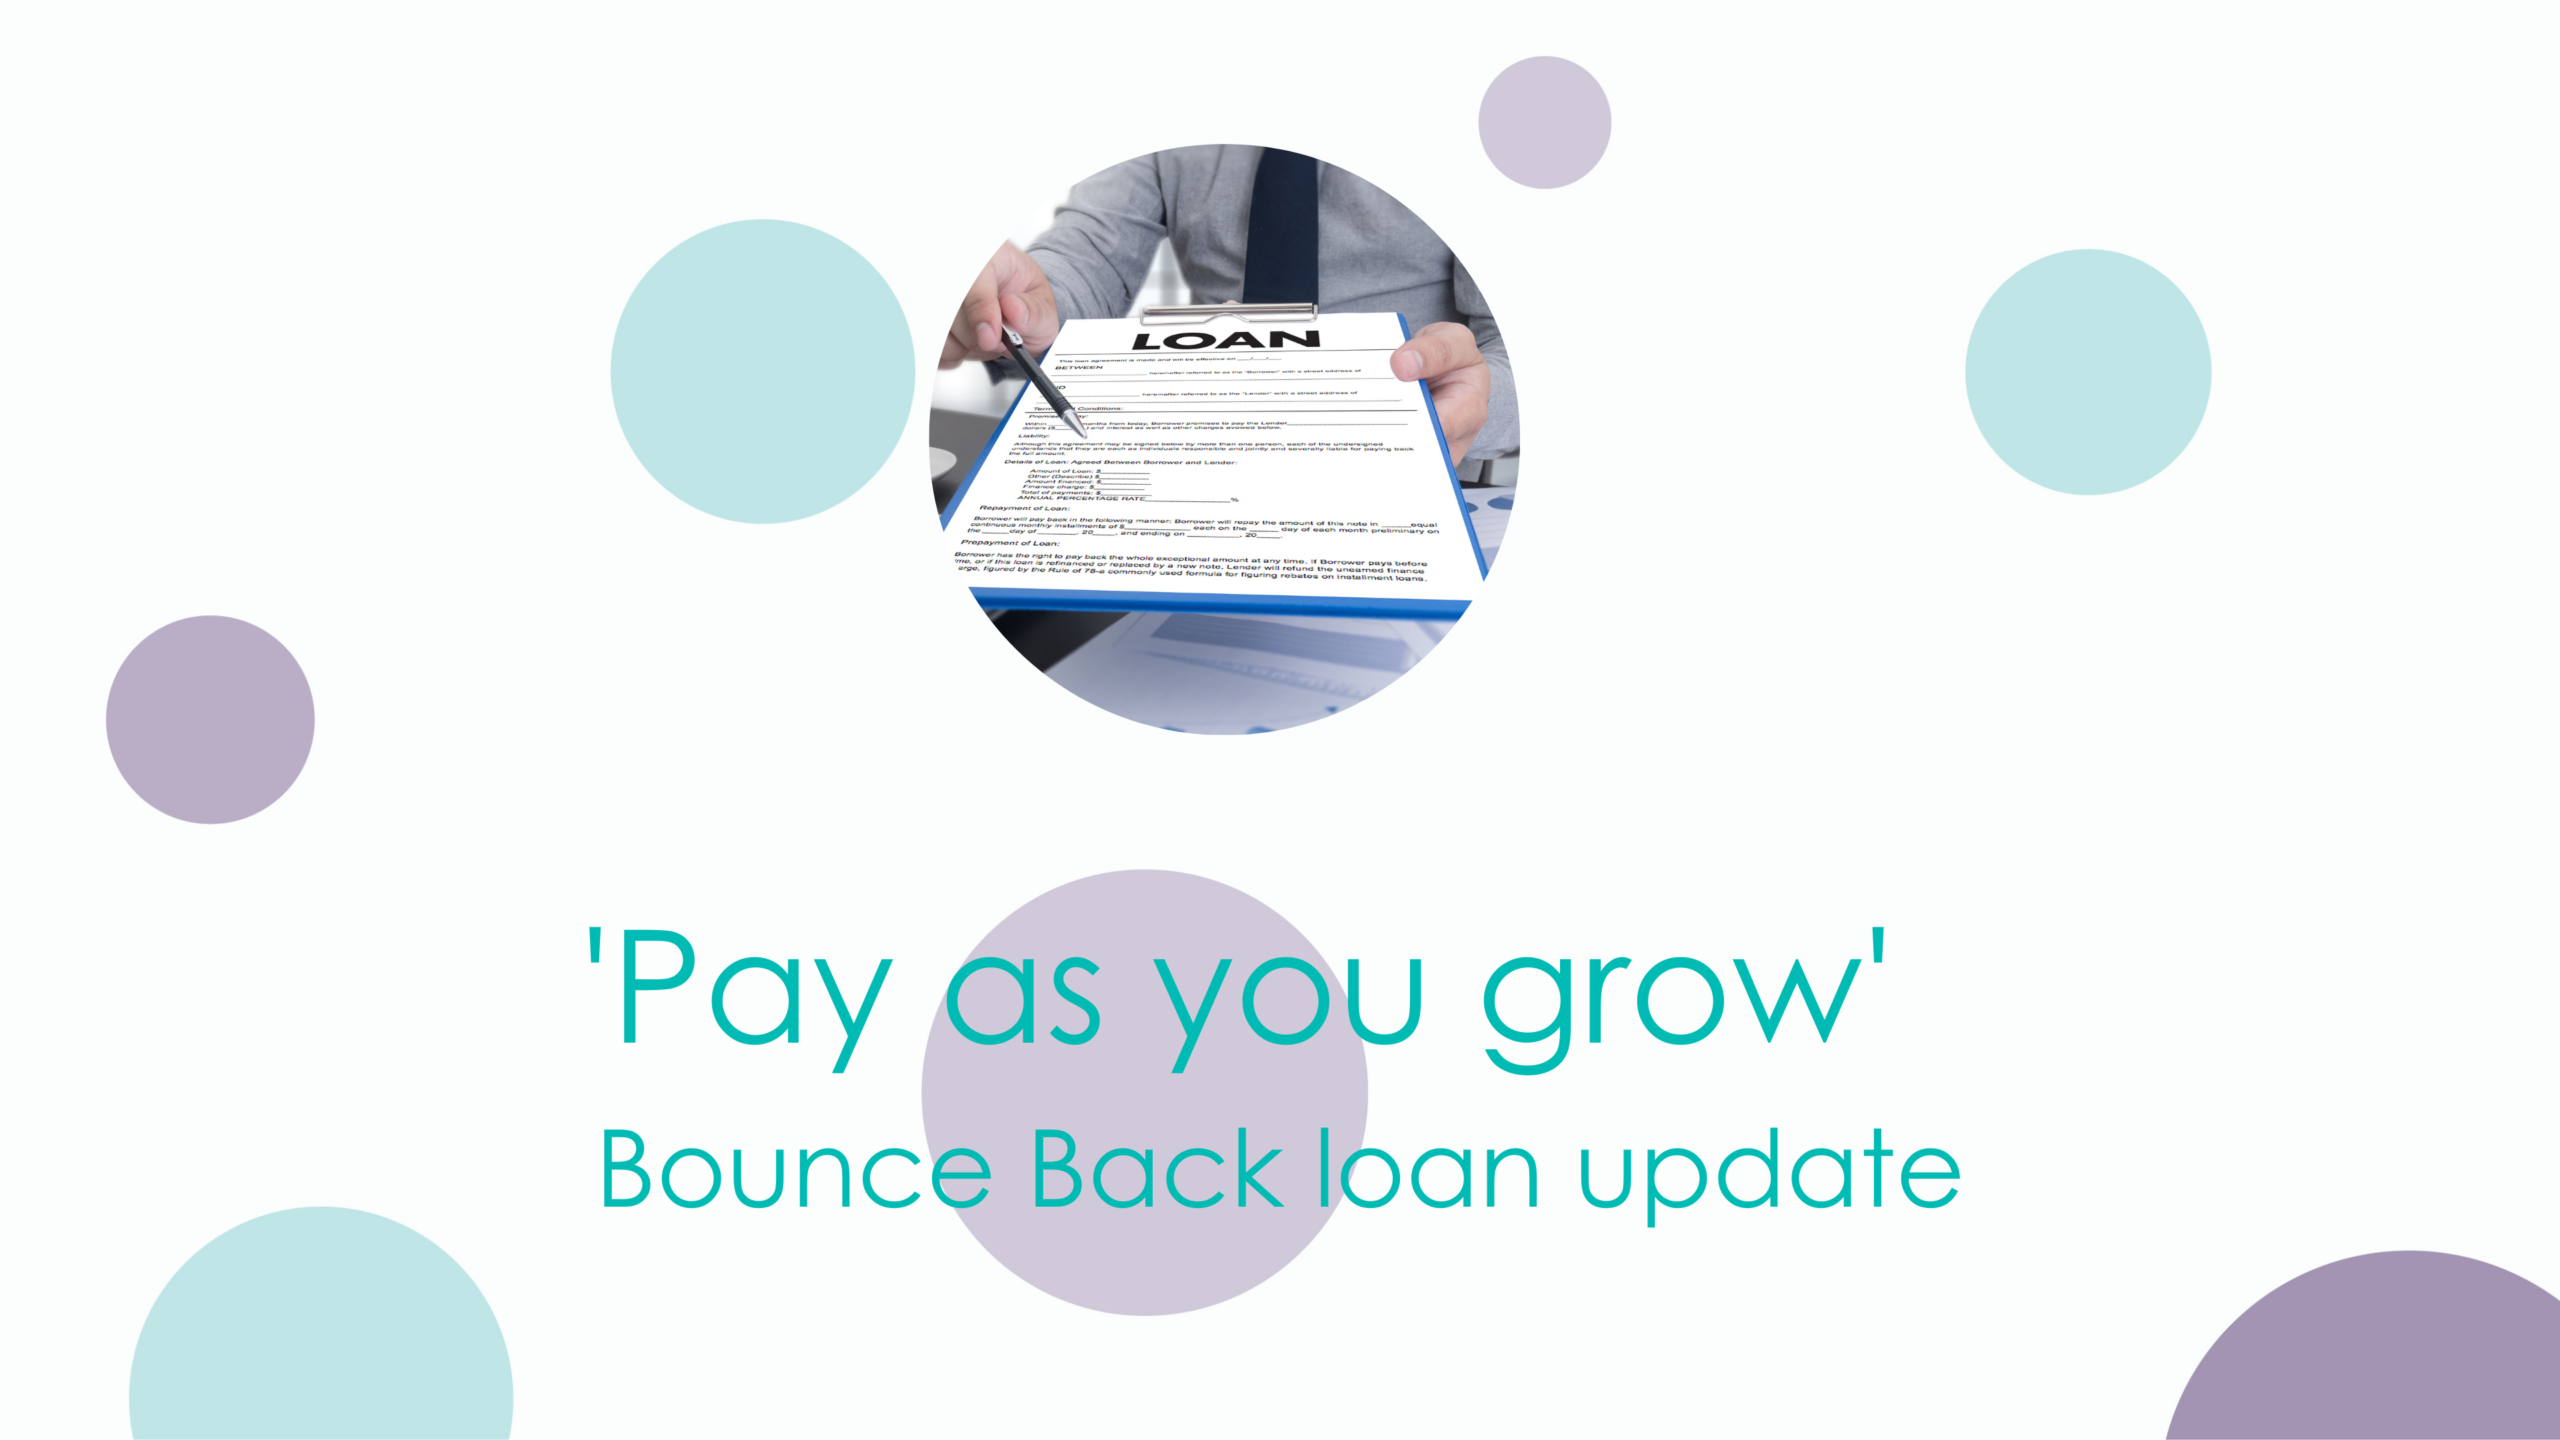 Pay as you Grow for Bounce Back Loans